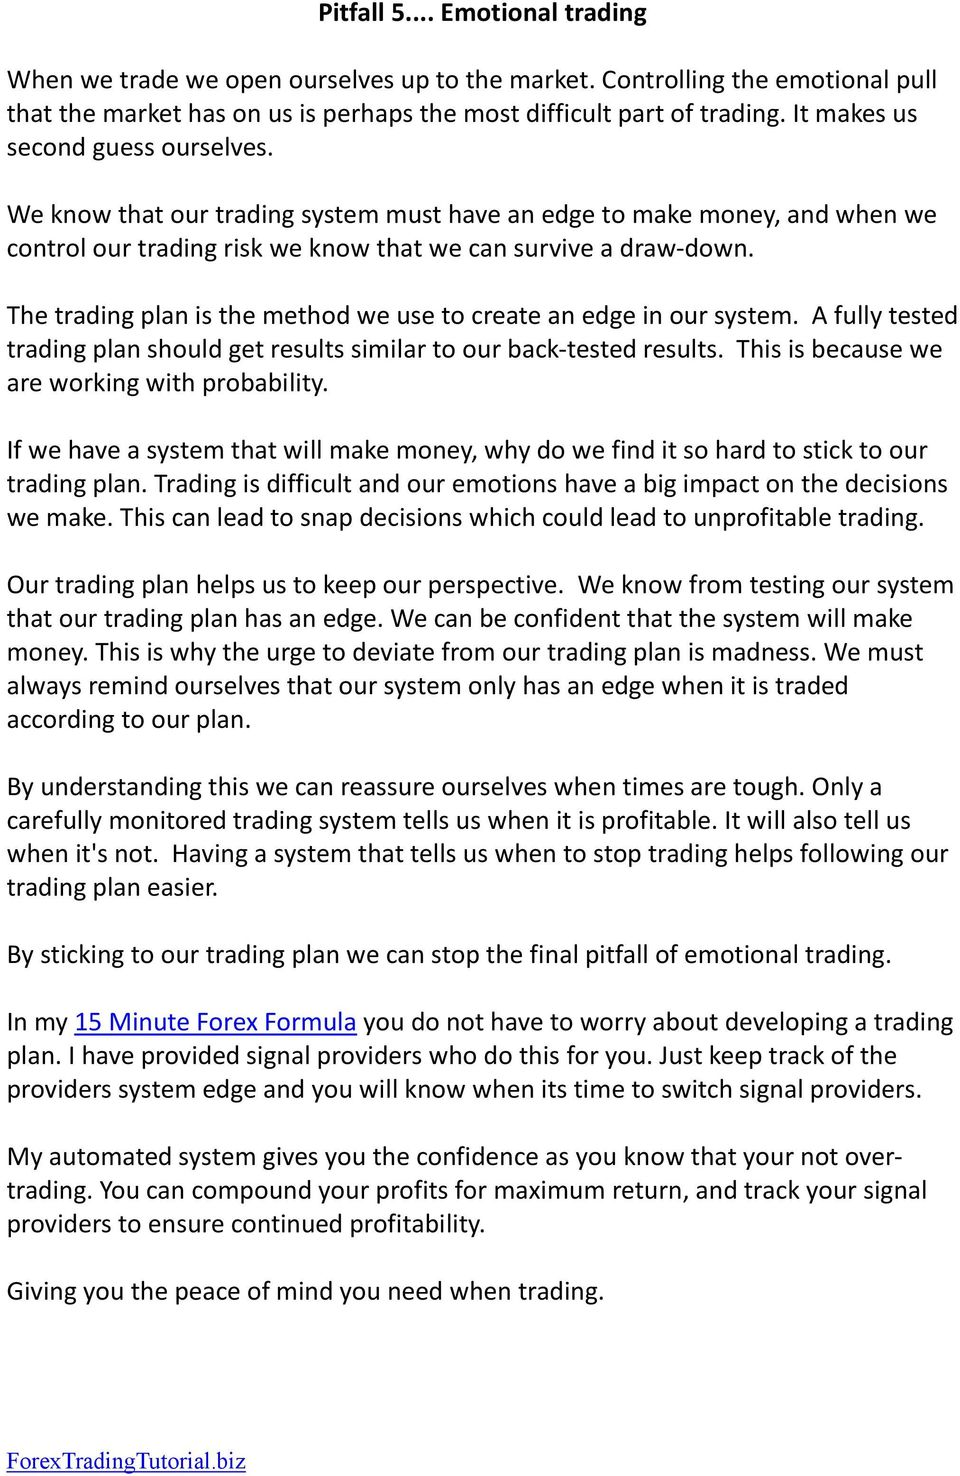 The trading plan is the method we use to create an edge in our system. A fully tested trading plan should get results similar to our back-tested results.